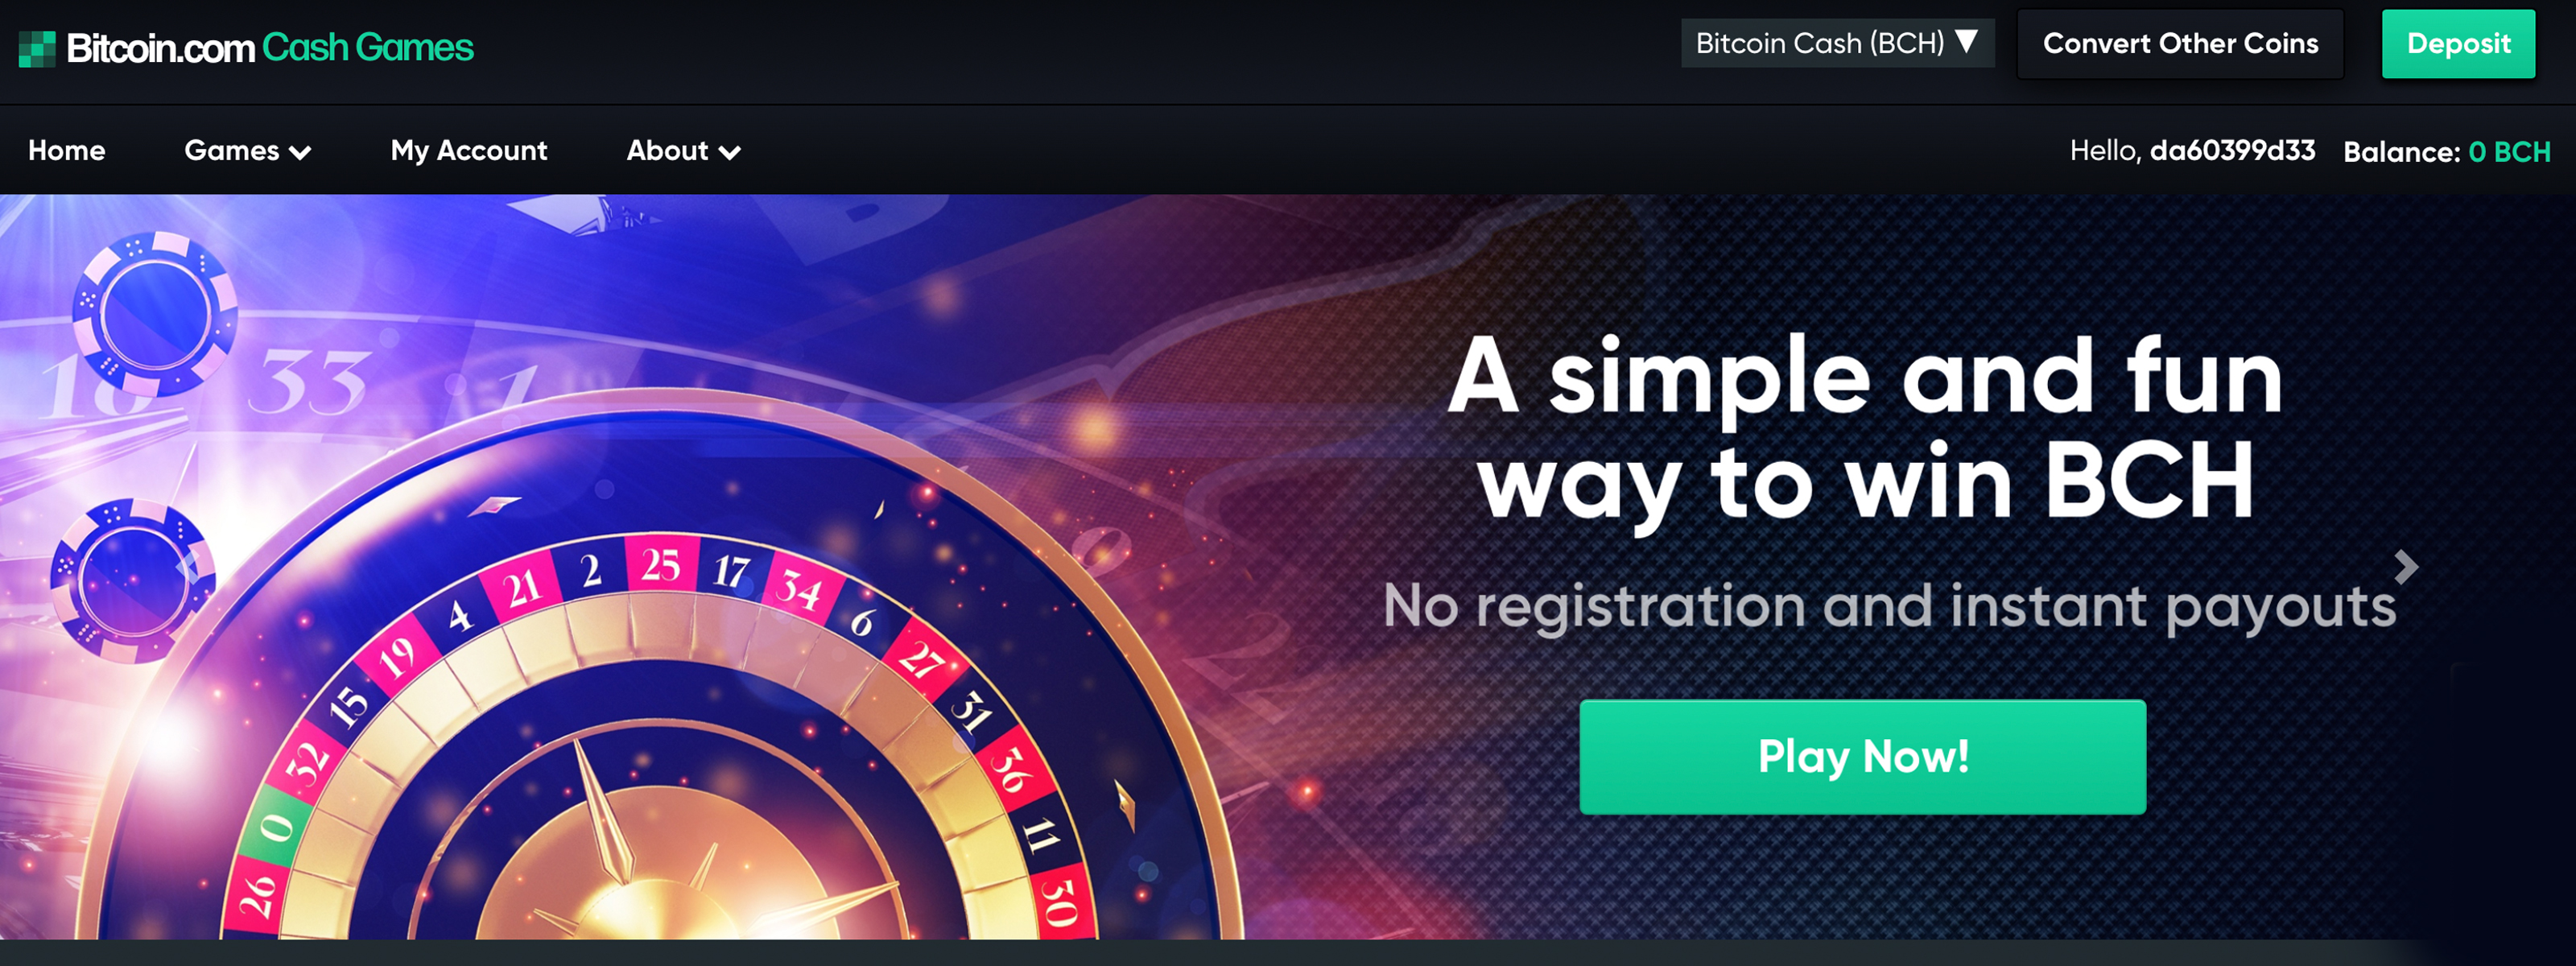 Why You Can't Bet With Bitcoin at Online Casinos in the US